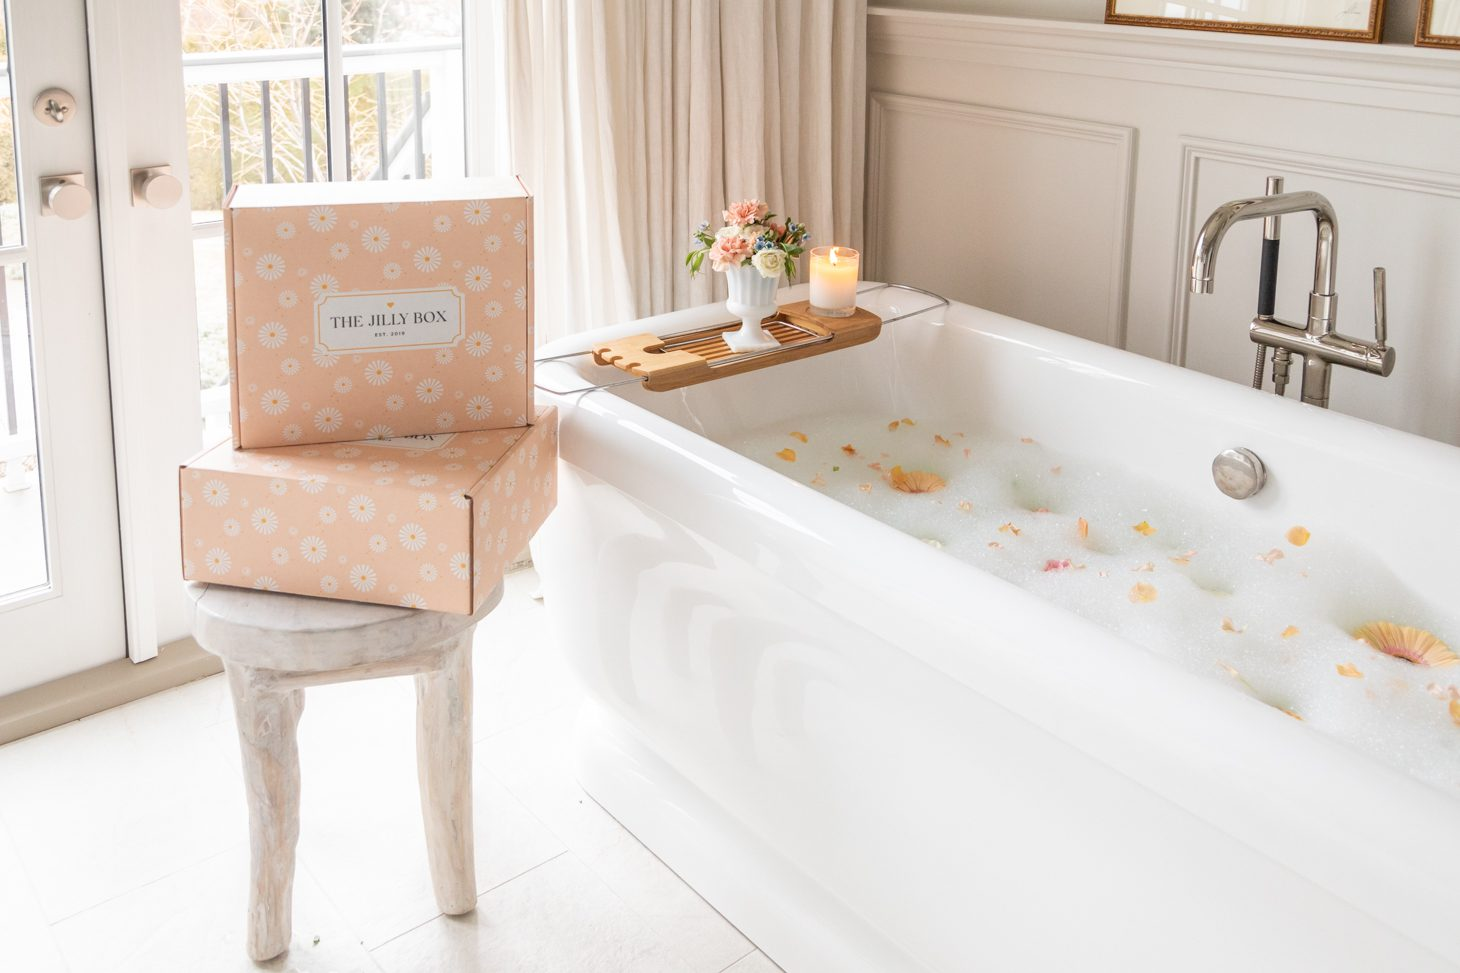 Jillian Harris Bathtub with Spring 2021 Jilly Box